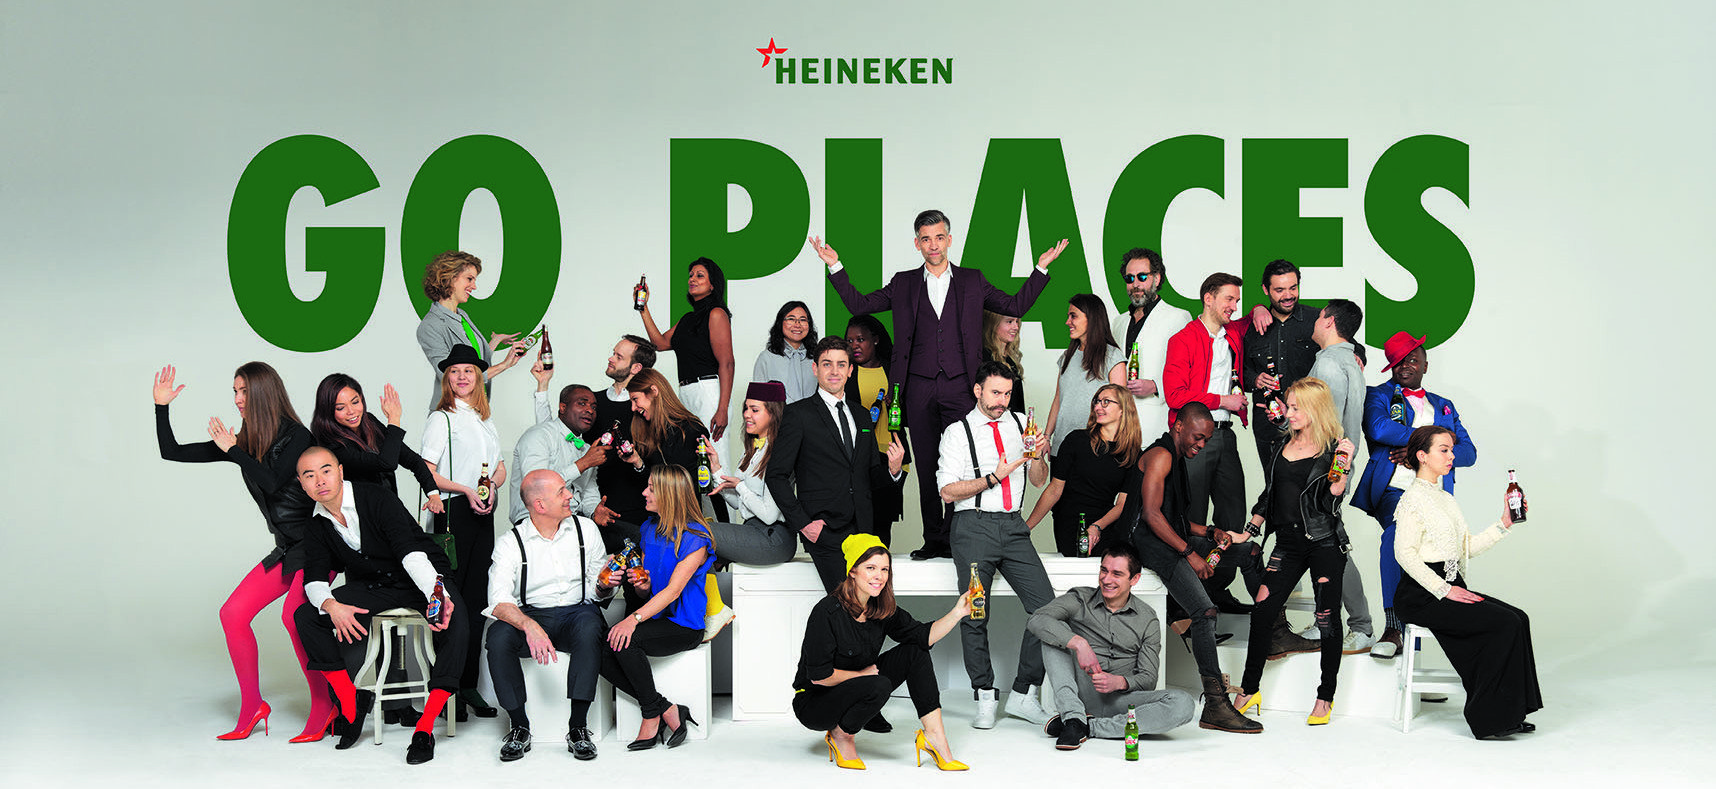 def_heineken__key_visual_new_grey_guy_no_radler-lores